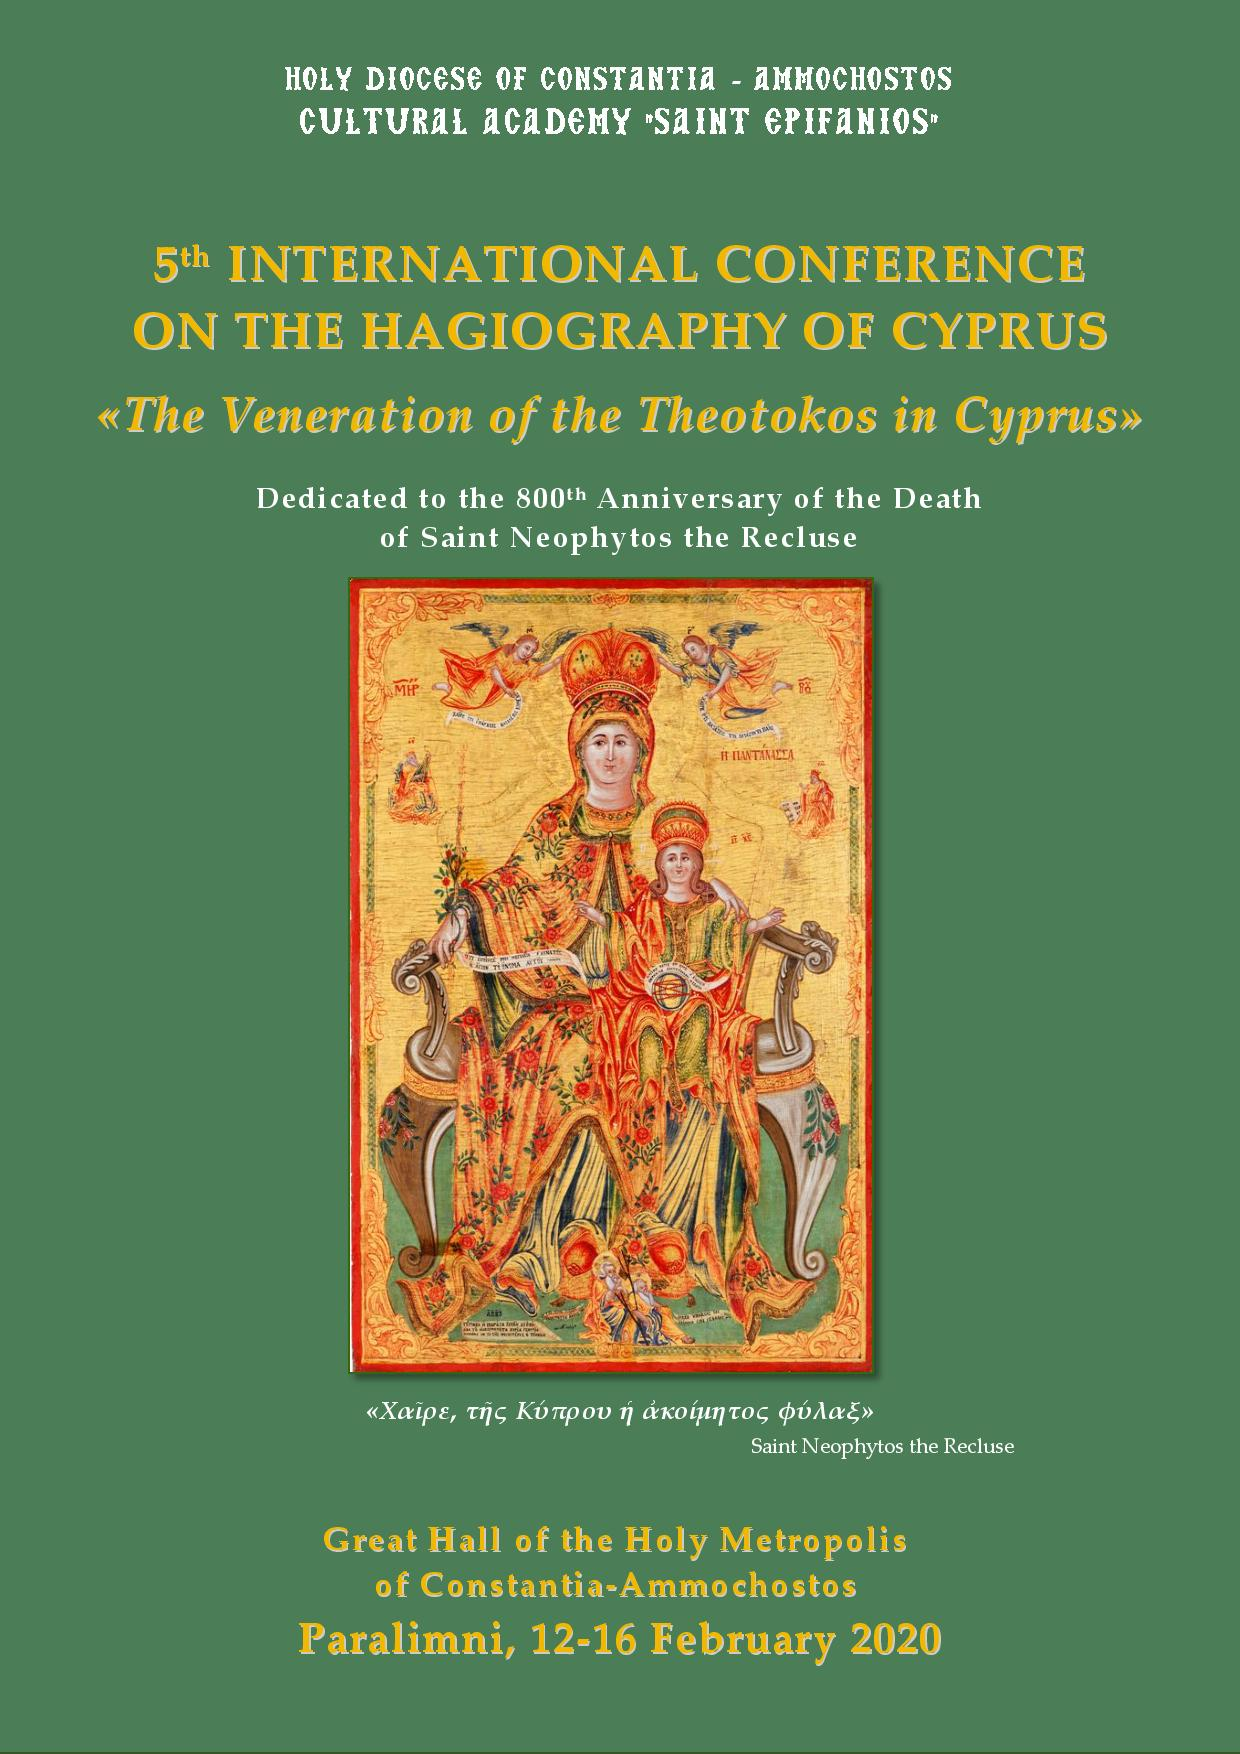 5th Conference Hagiography Of Cyprus Programme